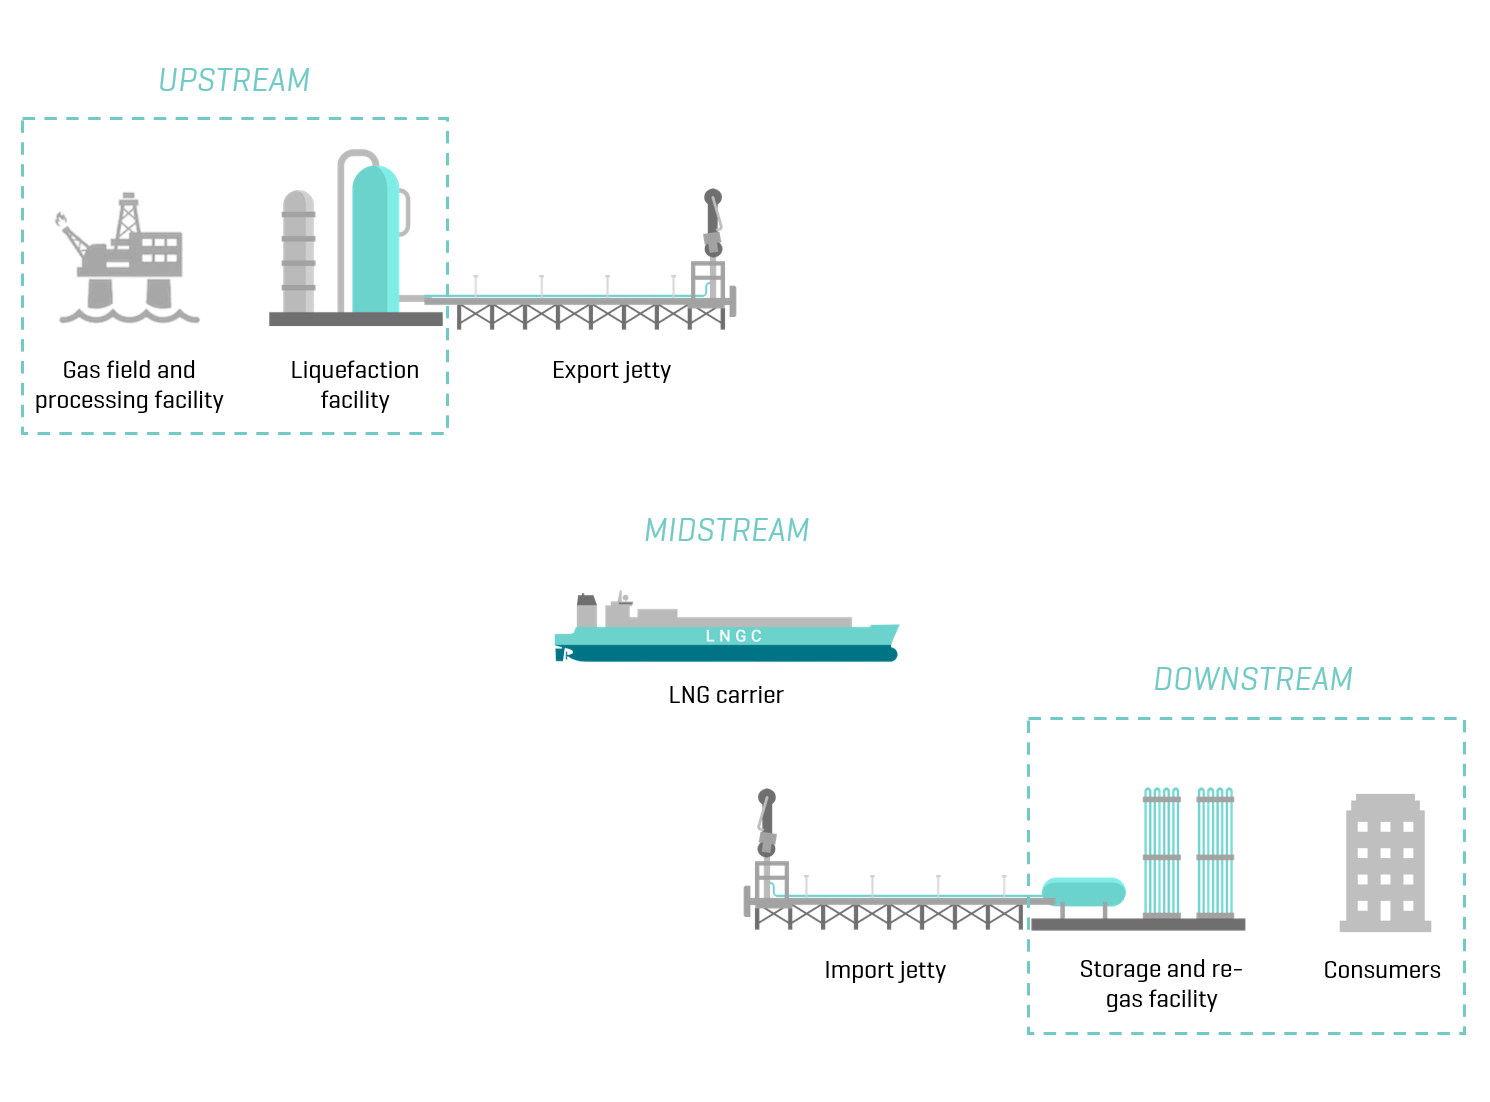 A traditional LNG value chain